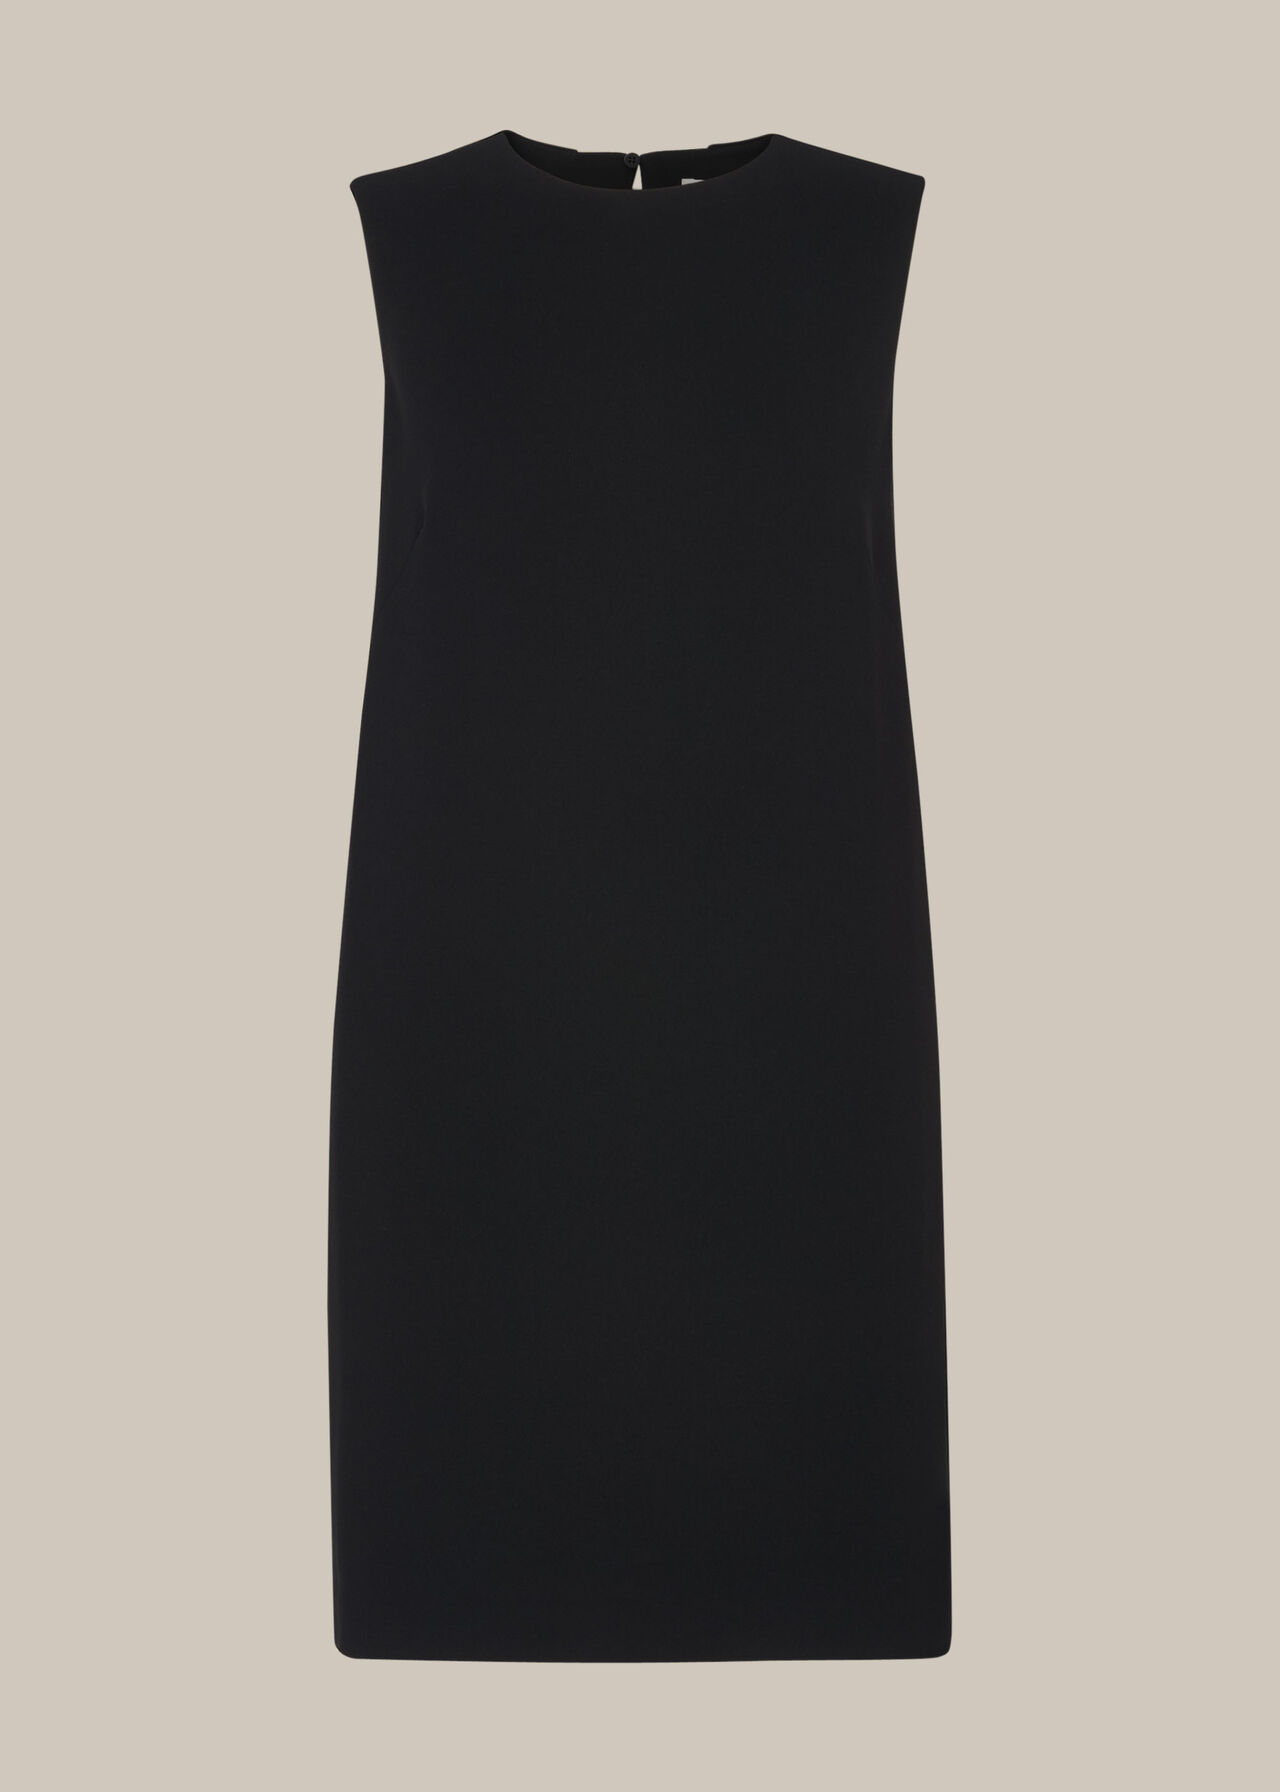 Cocoon Crepe Dress